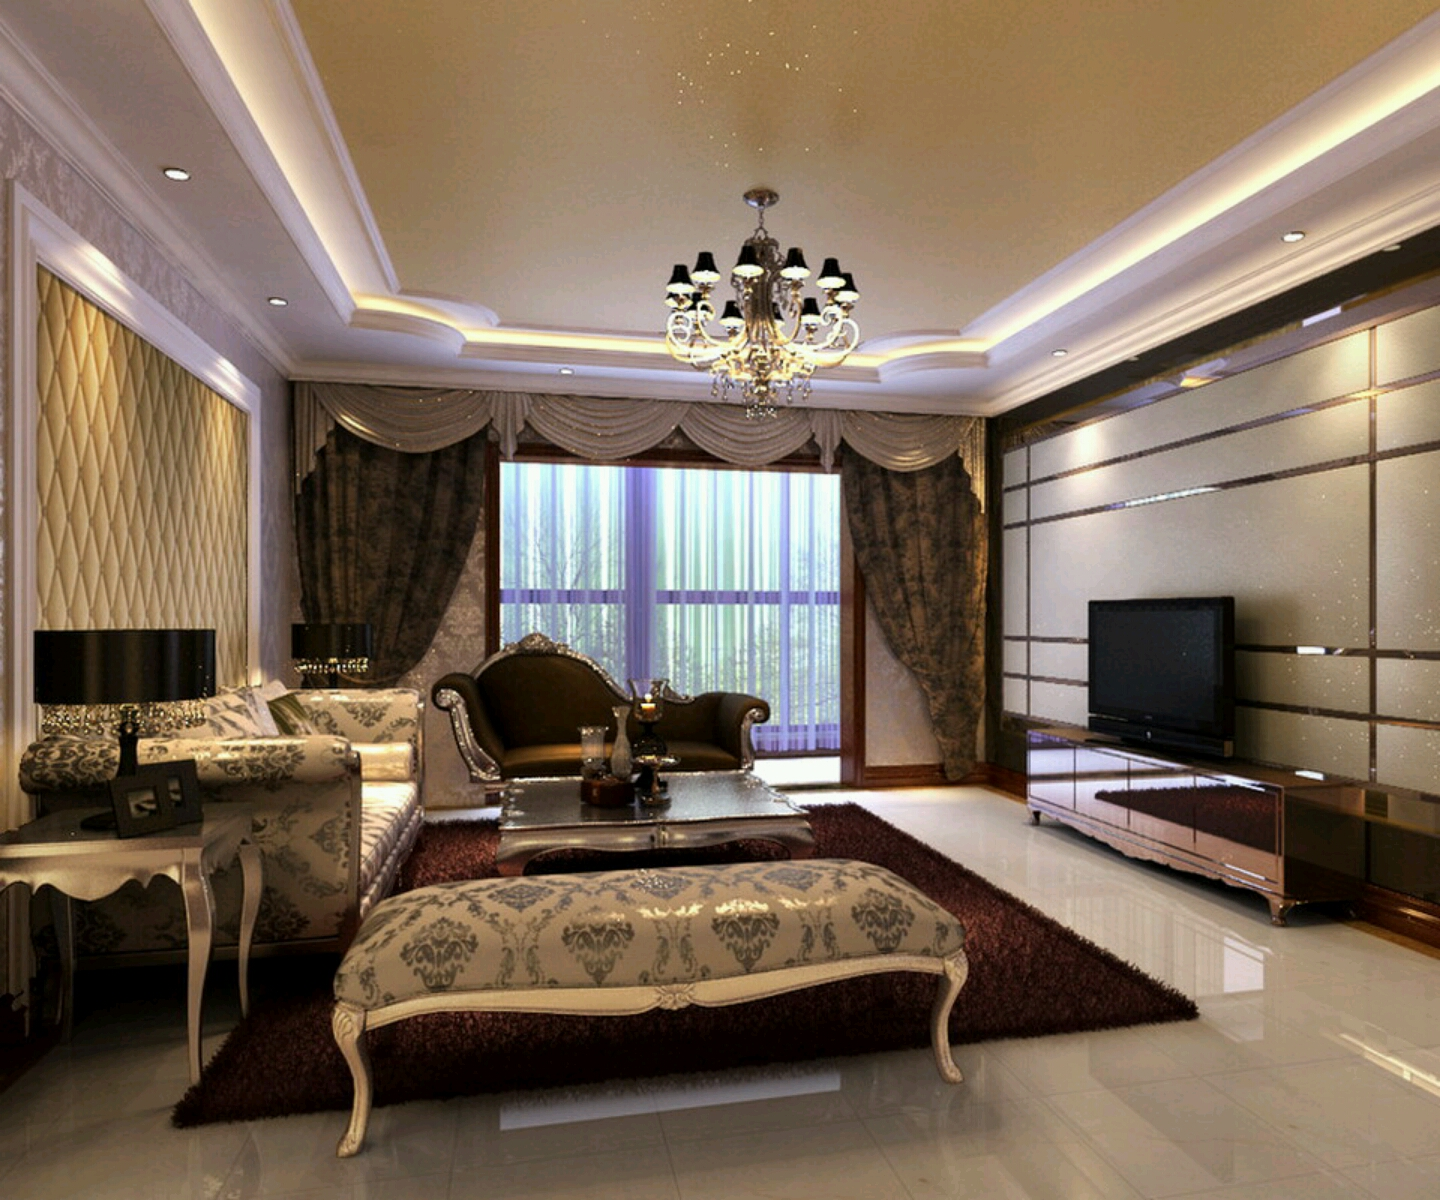 New home designs latest luxury homes interior decoration for Home interior decorating